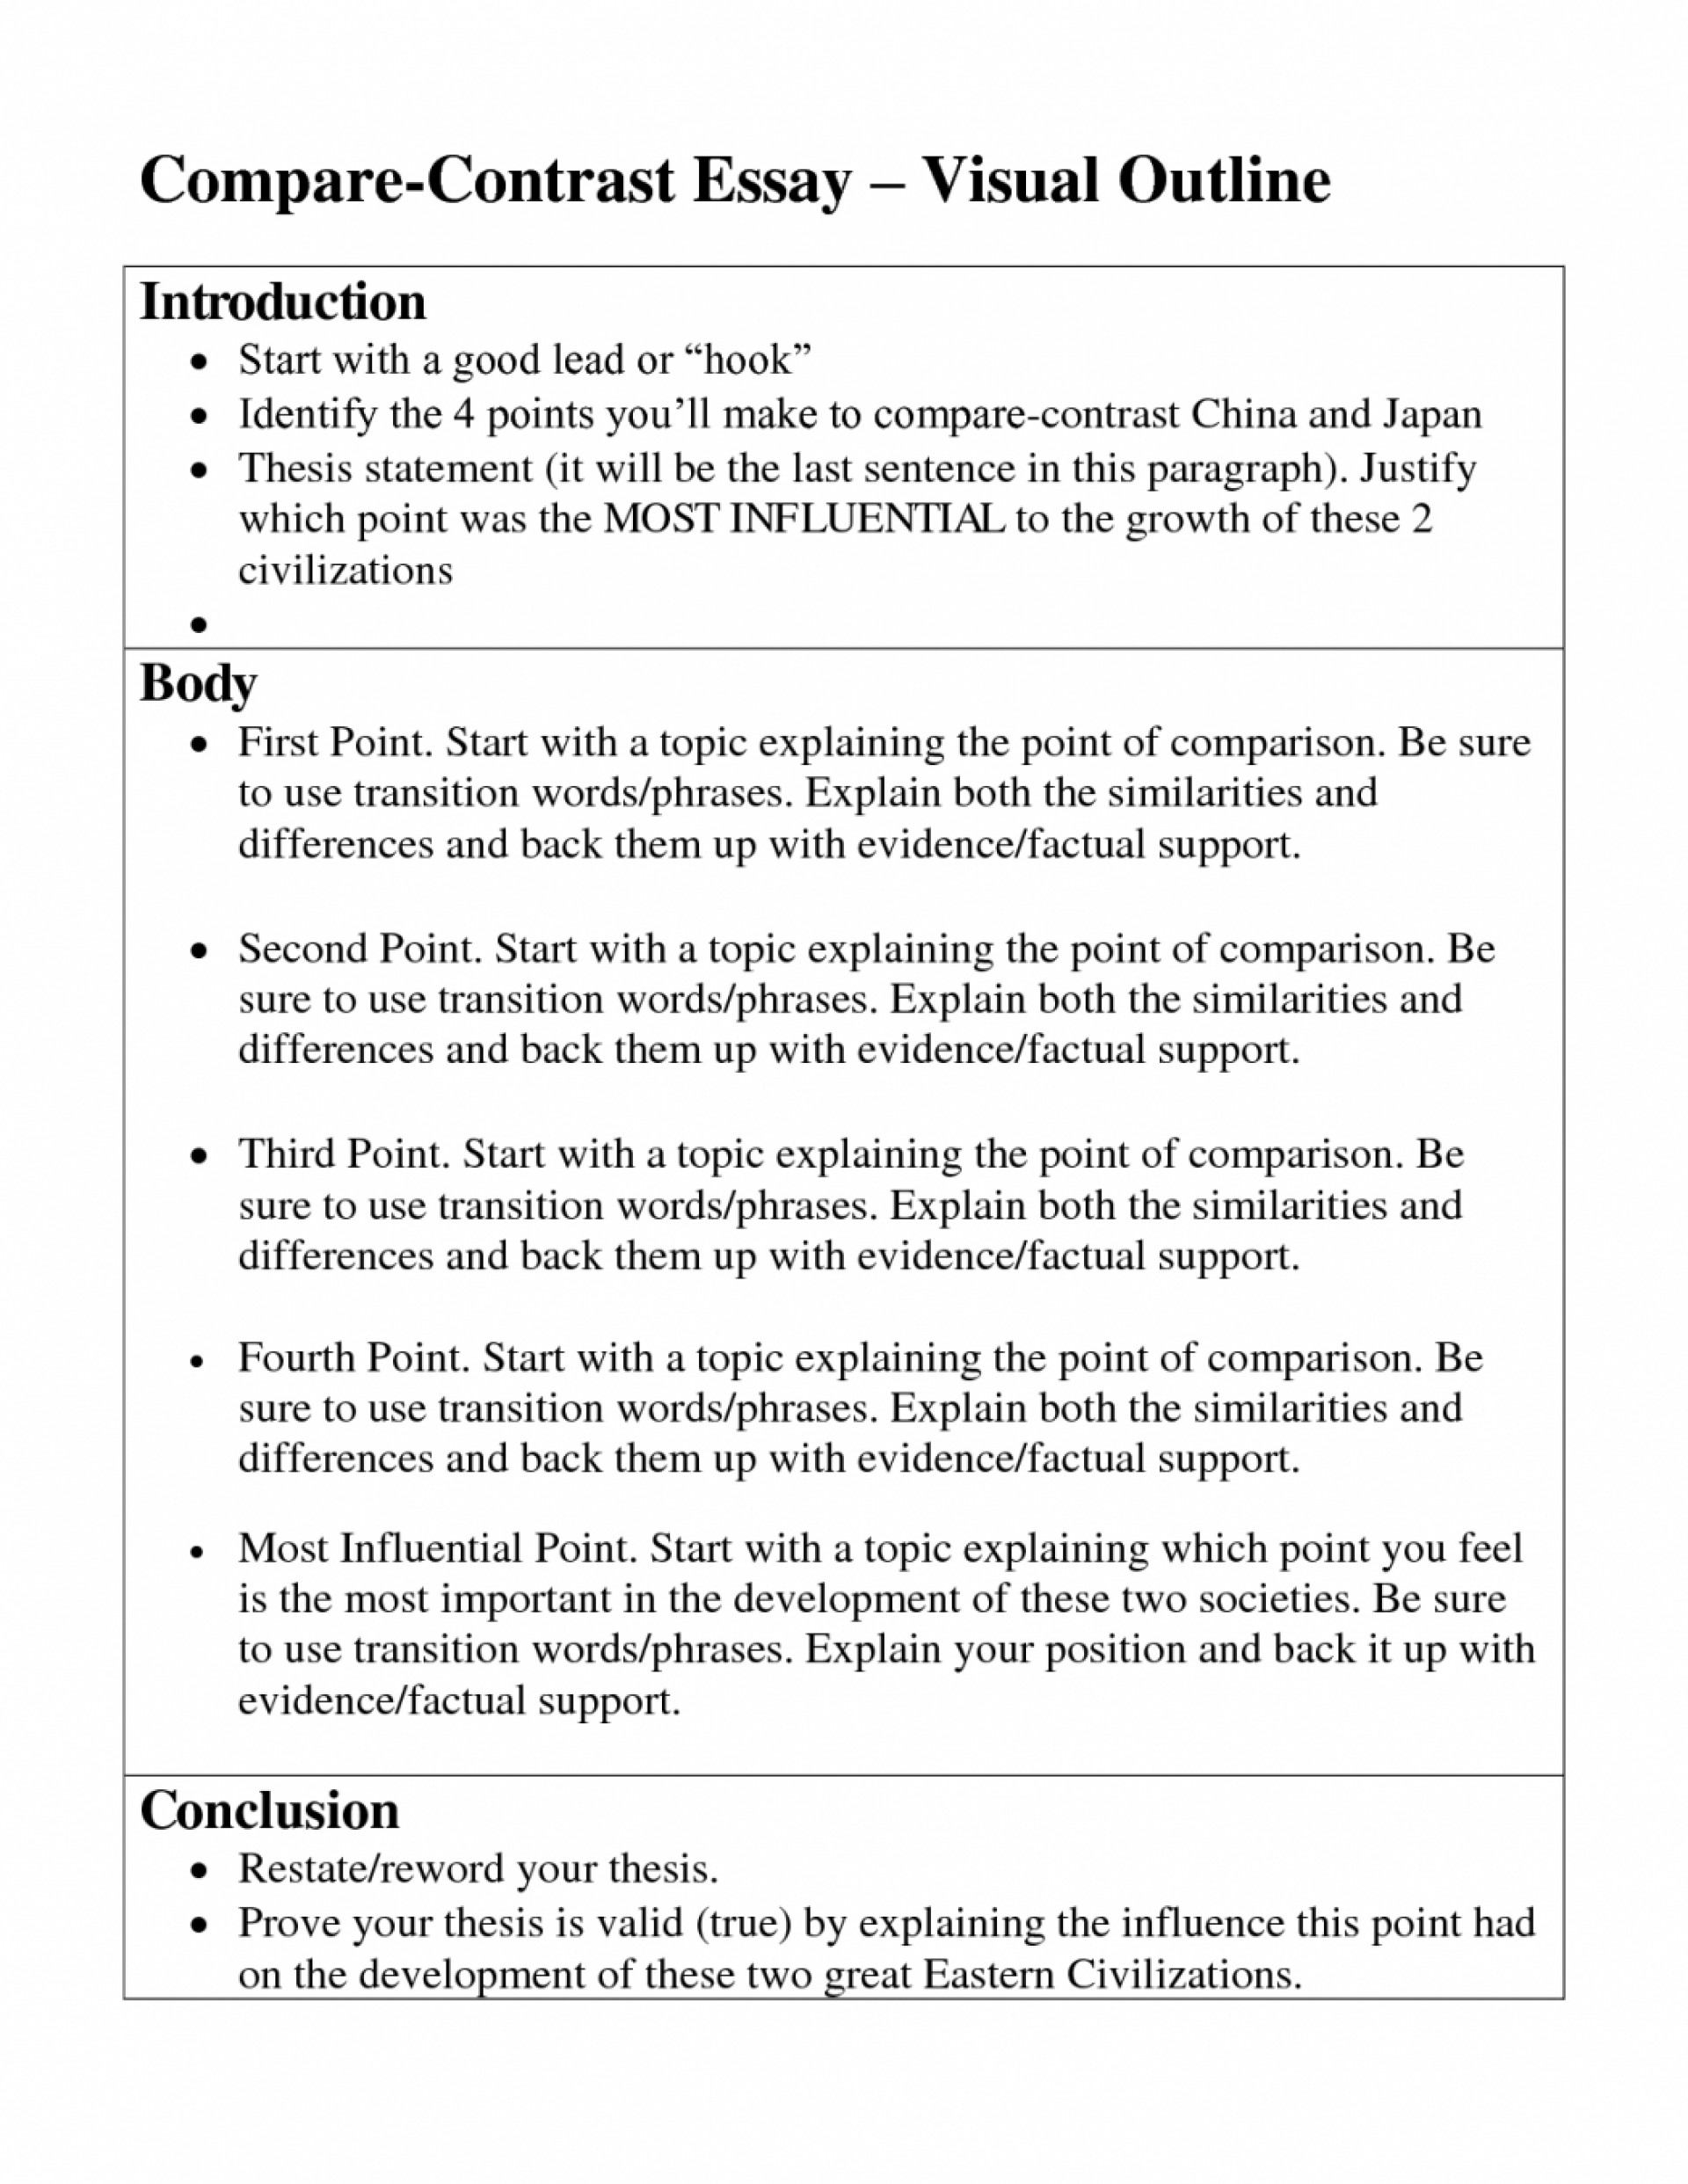 003 Compare And Contrast Essay Topics For High School Students English College Pdf Research Paper 1048x1356 Stupendous Middle Elementary 1920